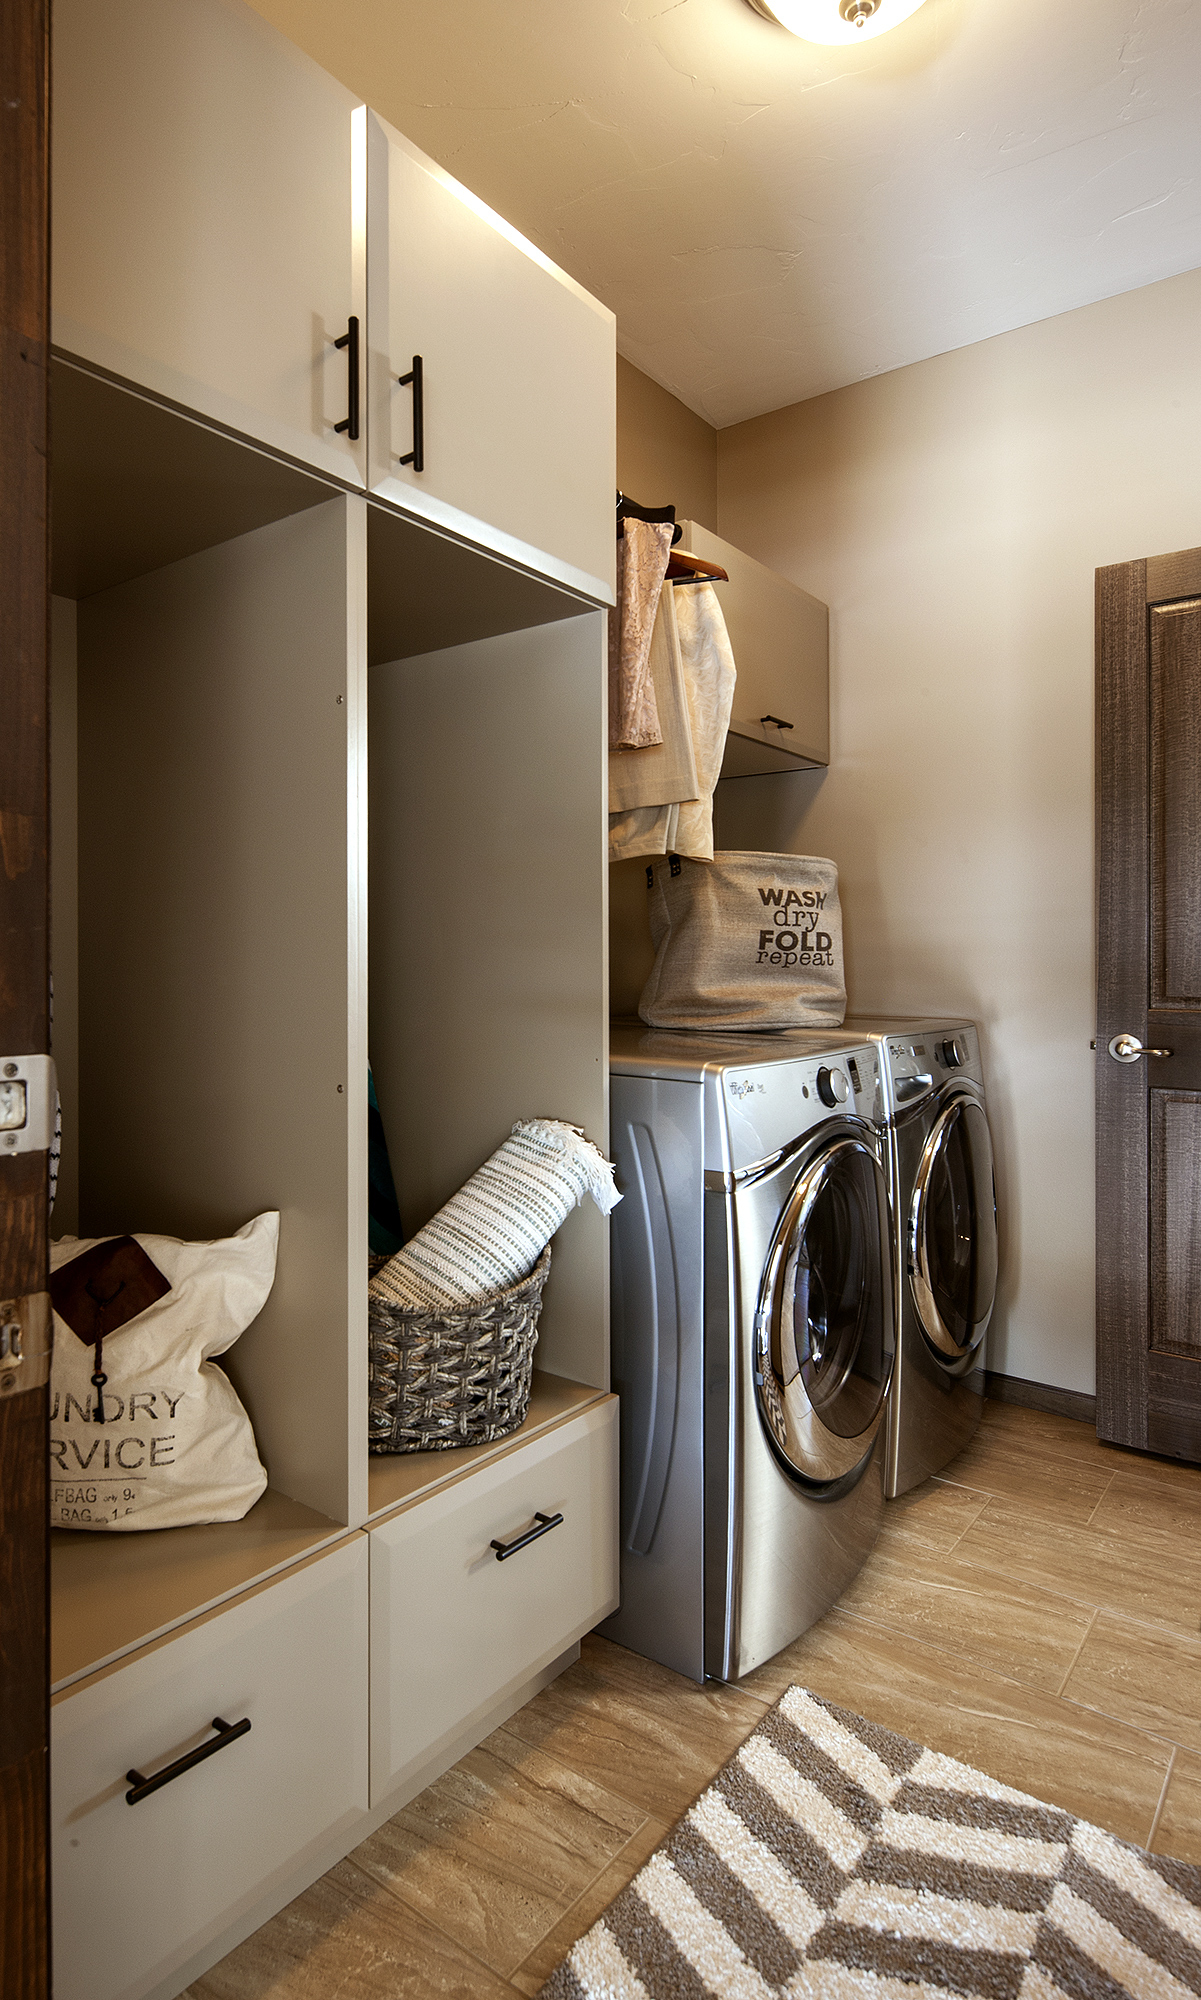 Painted Laundry Cabinets in Sandstone by ShowplaceEVO